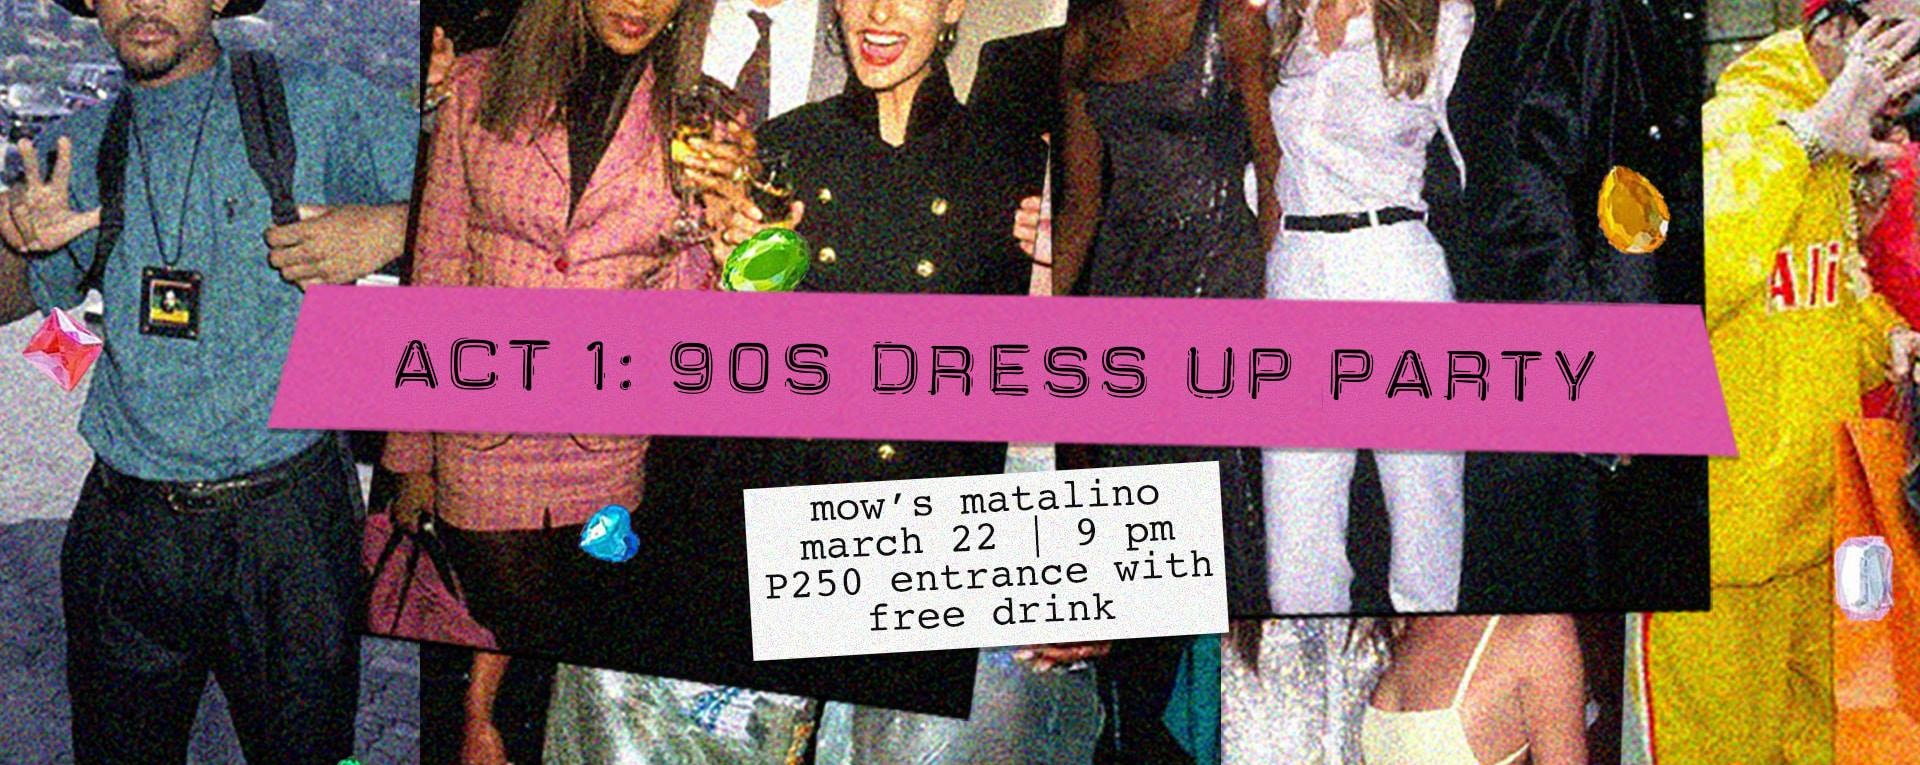 ACT 1: 90s DRESS UP PARTY